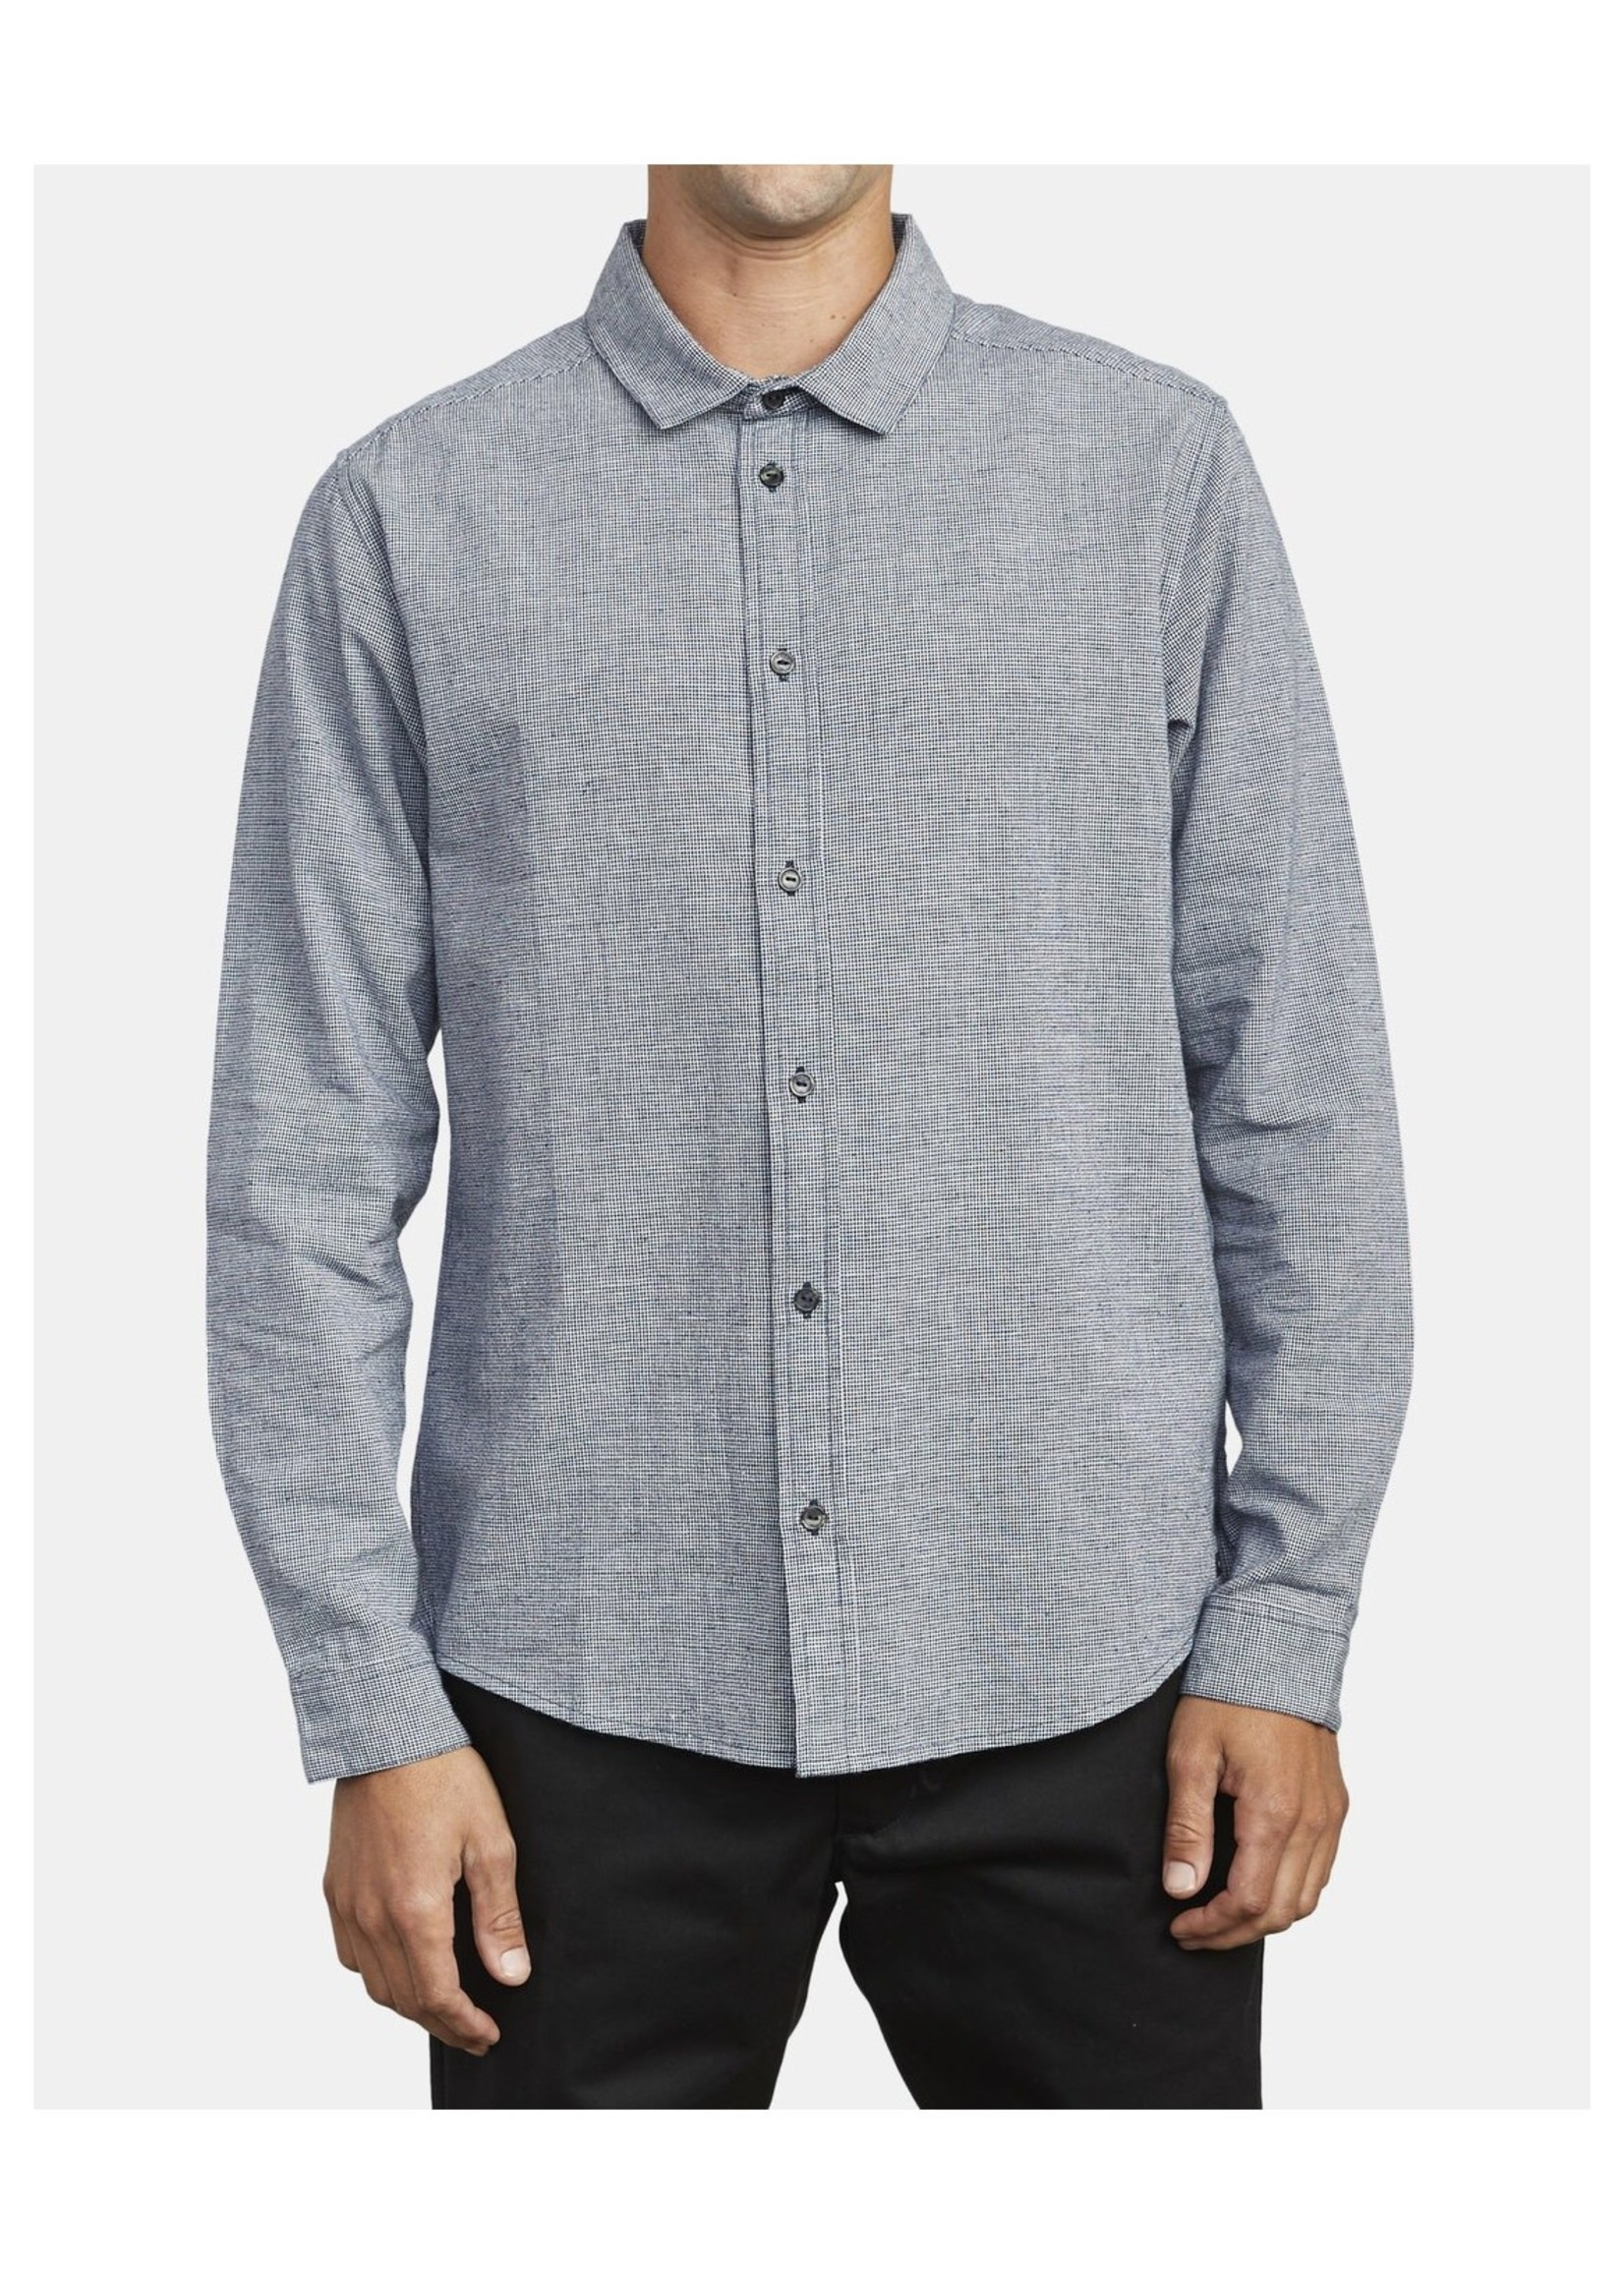 RVCA Chrushed Check LS Shirt